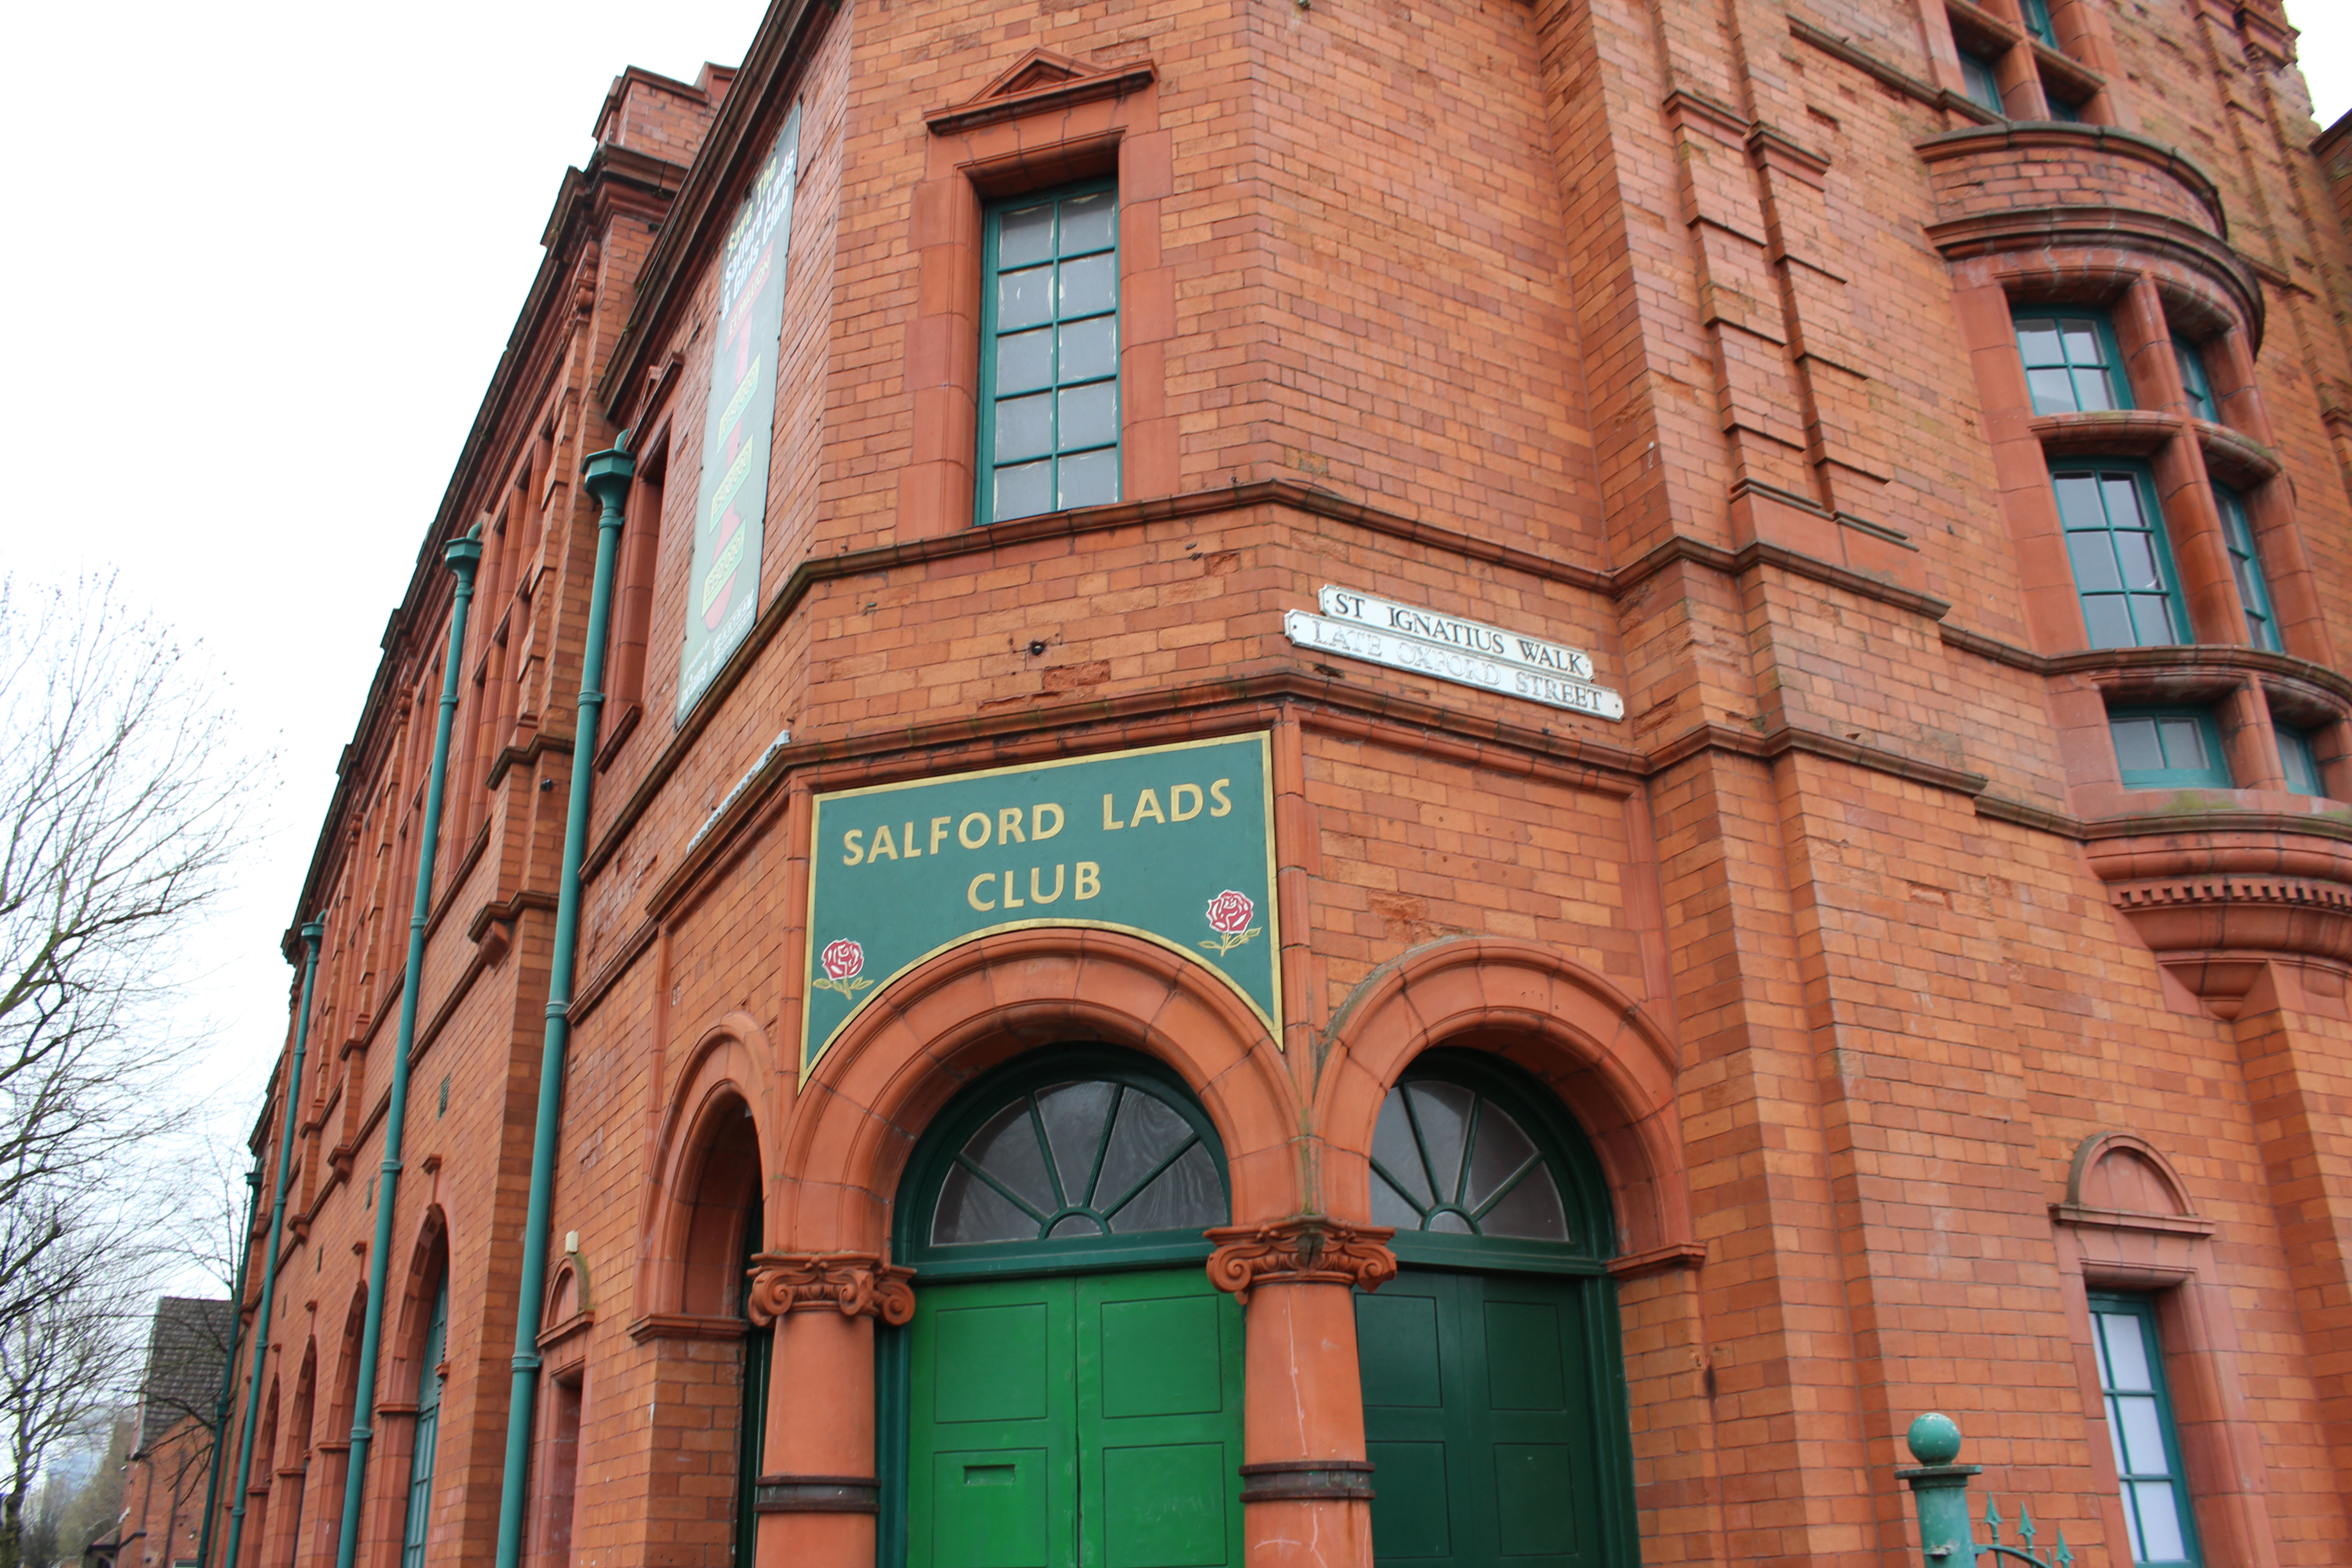 Image: Salford Lads Club Unedited